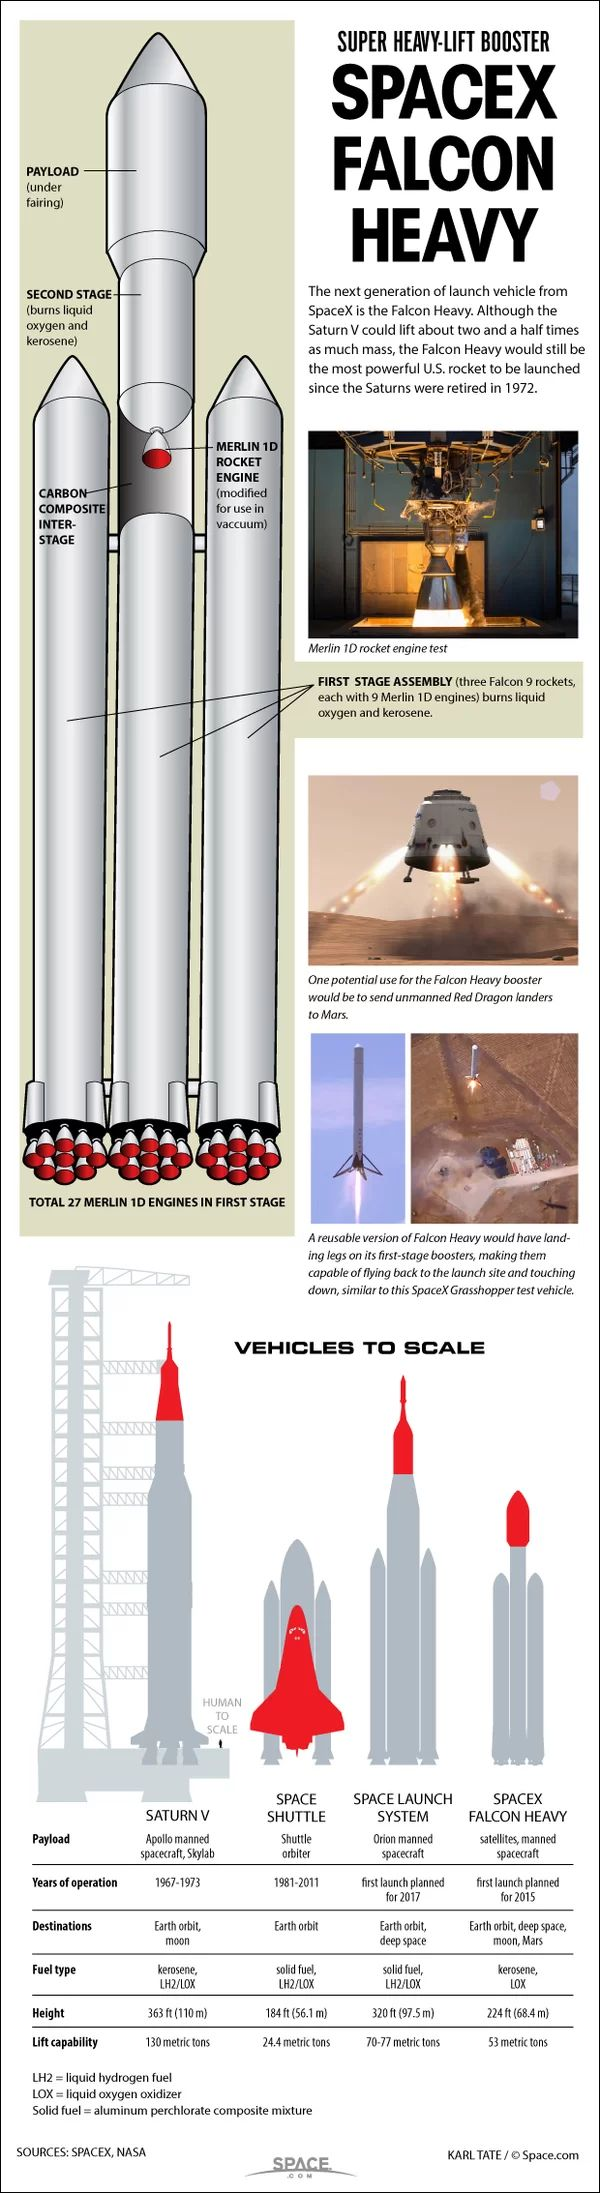 SpaceX's Huge Falcon Heavy Rocket: How It Works (Infographic)